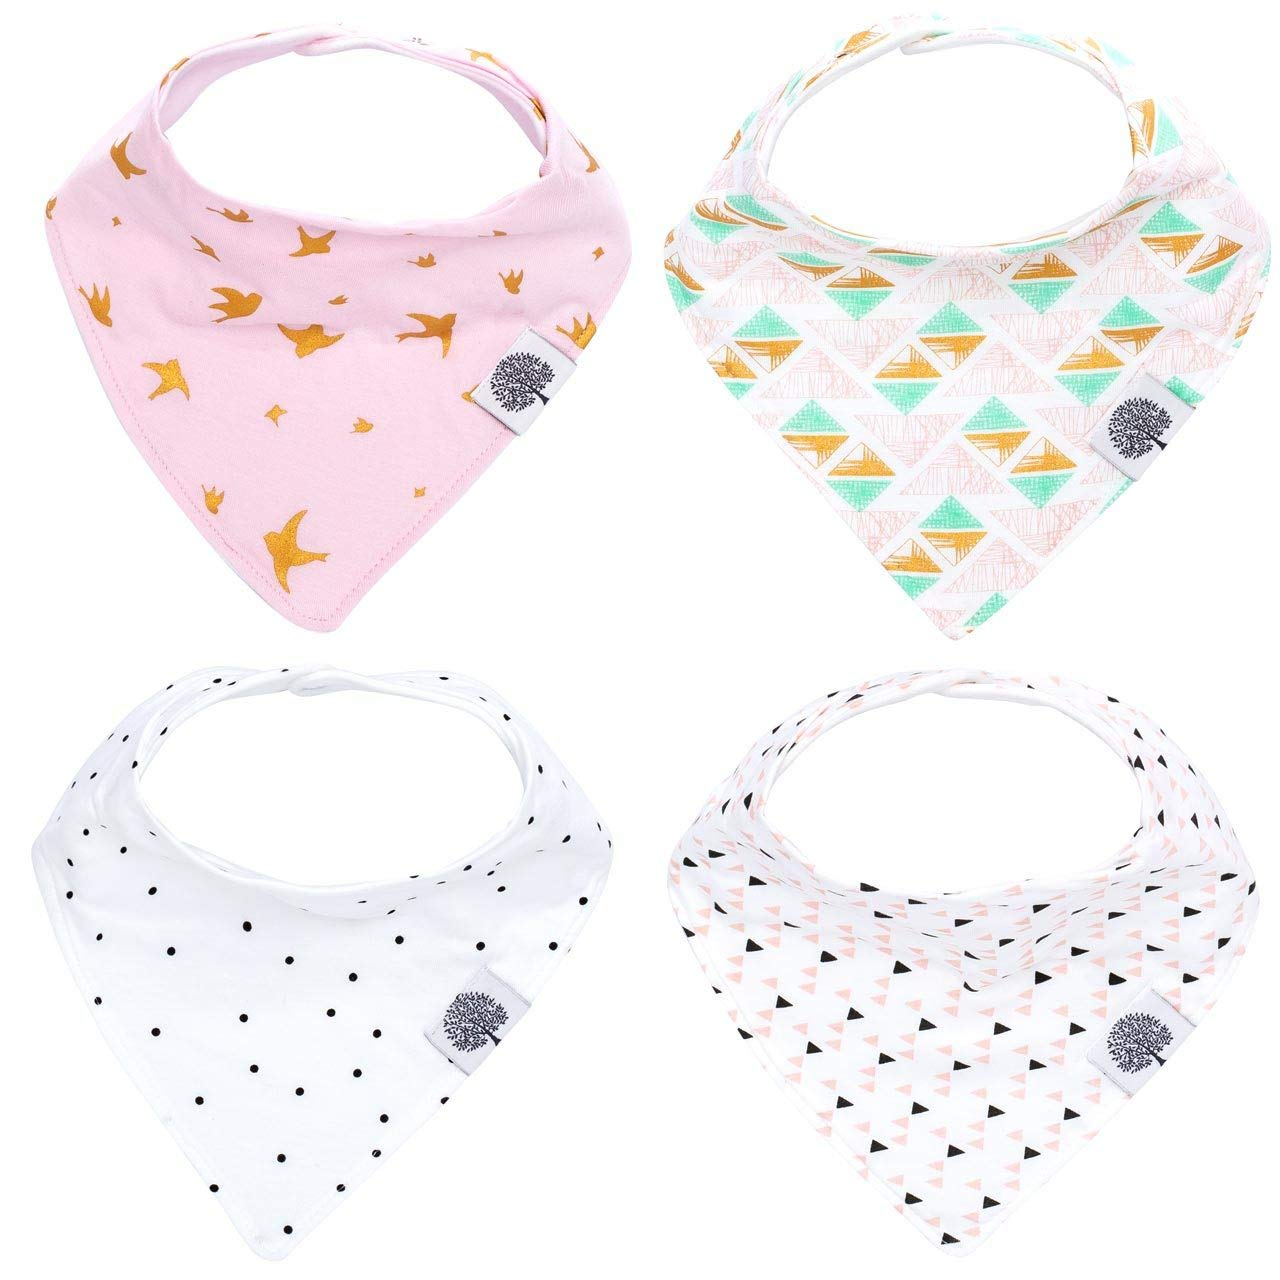 Bebamour Unisex Cotton Baby Drool Bibs 3 Pieces A Pack Teething Pad for Infant Soft and Absorbent Carrier Accessories Babys Gift Settings(white